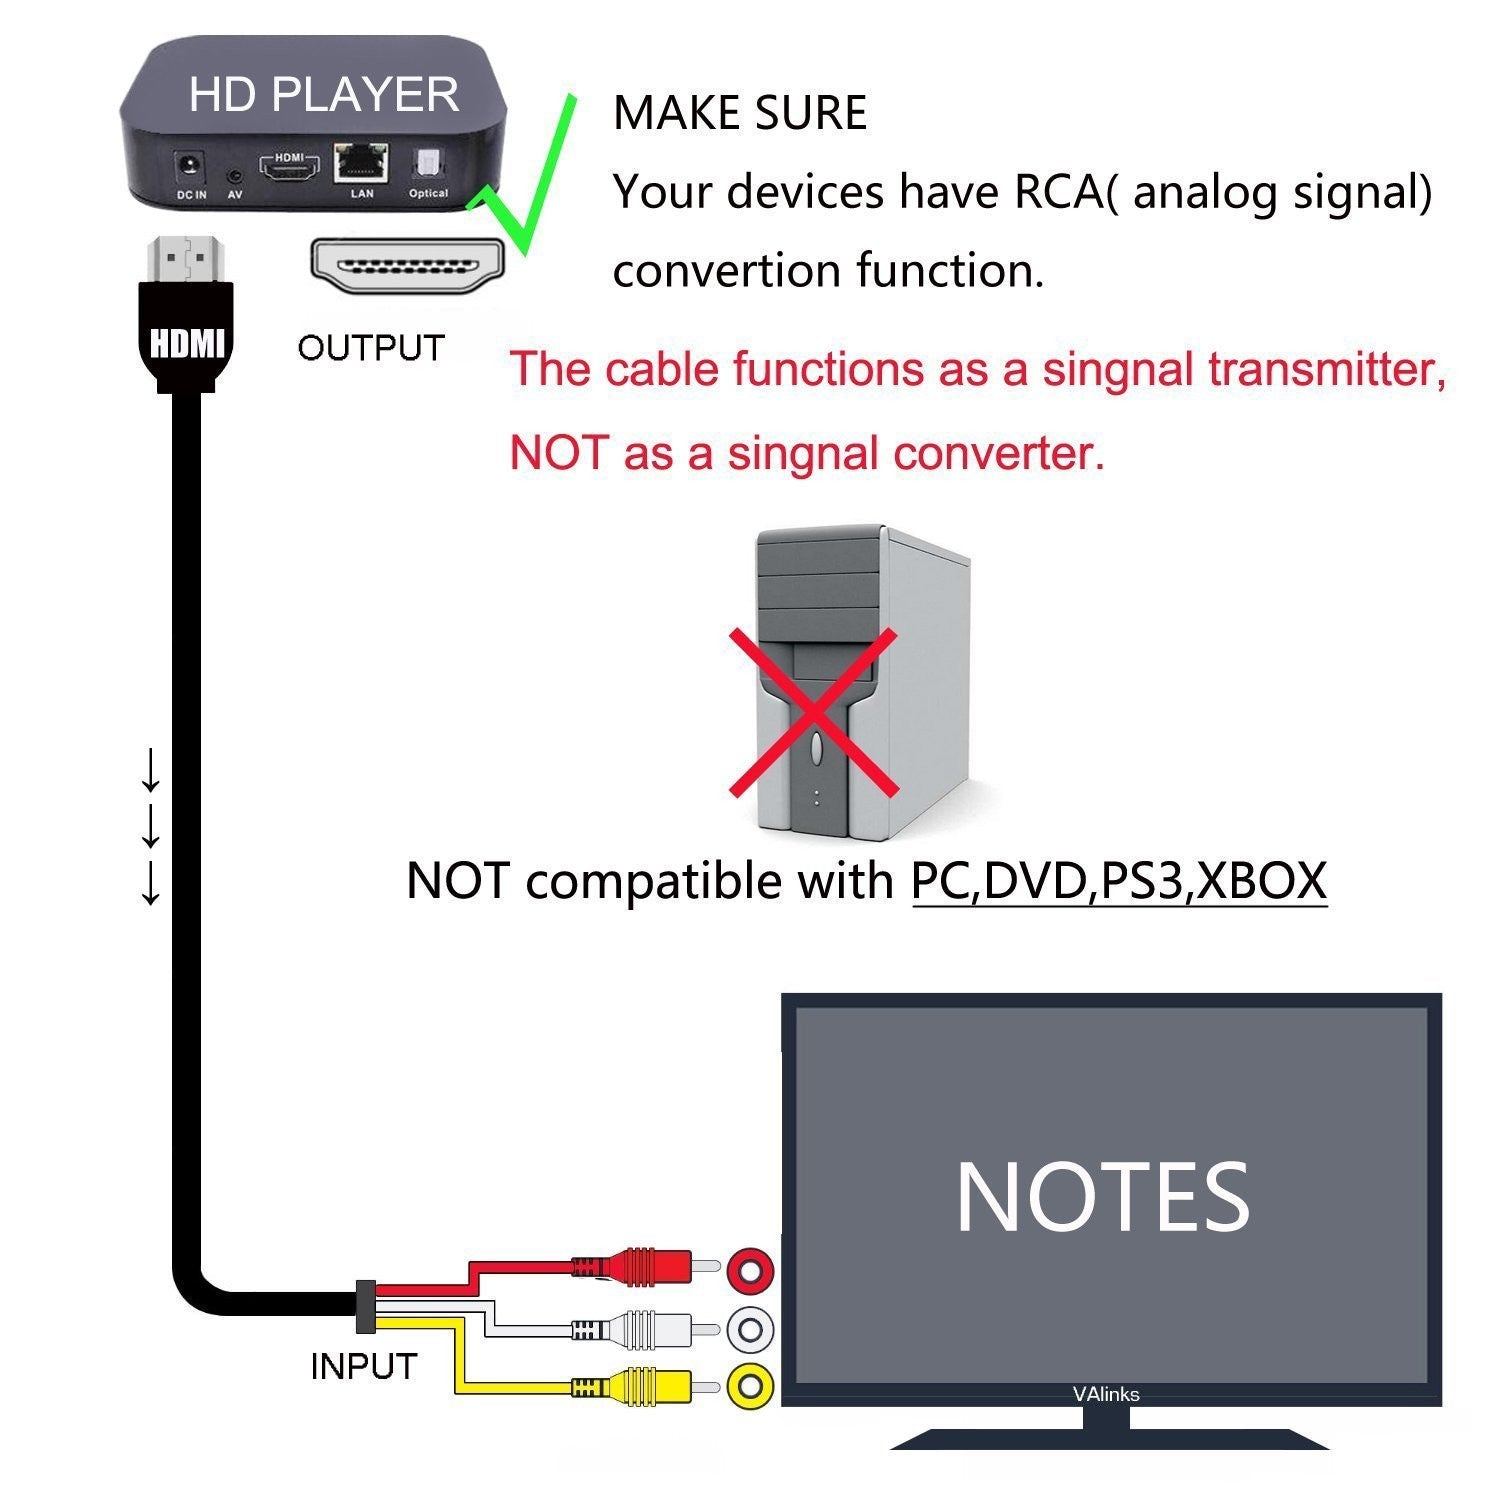 Rca Pin Diagram Wiring Schematic Data Screenshots Of And Display Areas For Hdmi To Av Vga Cable